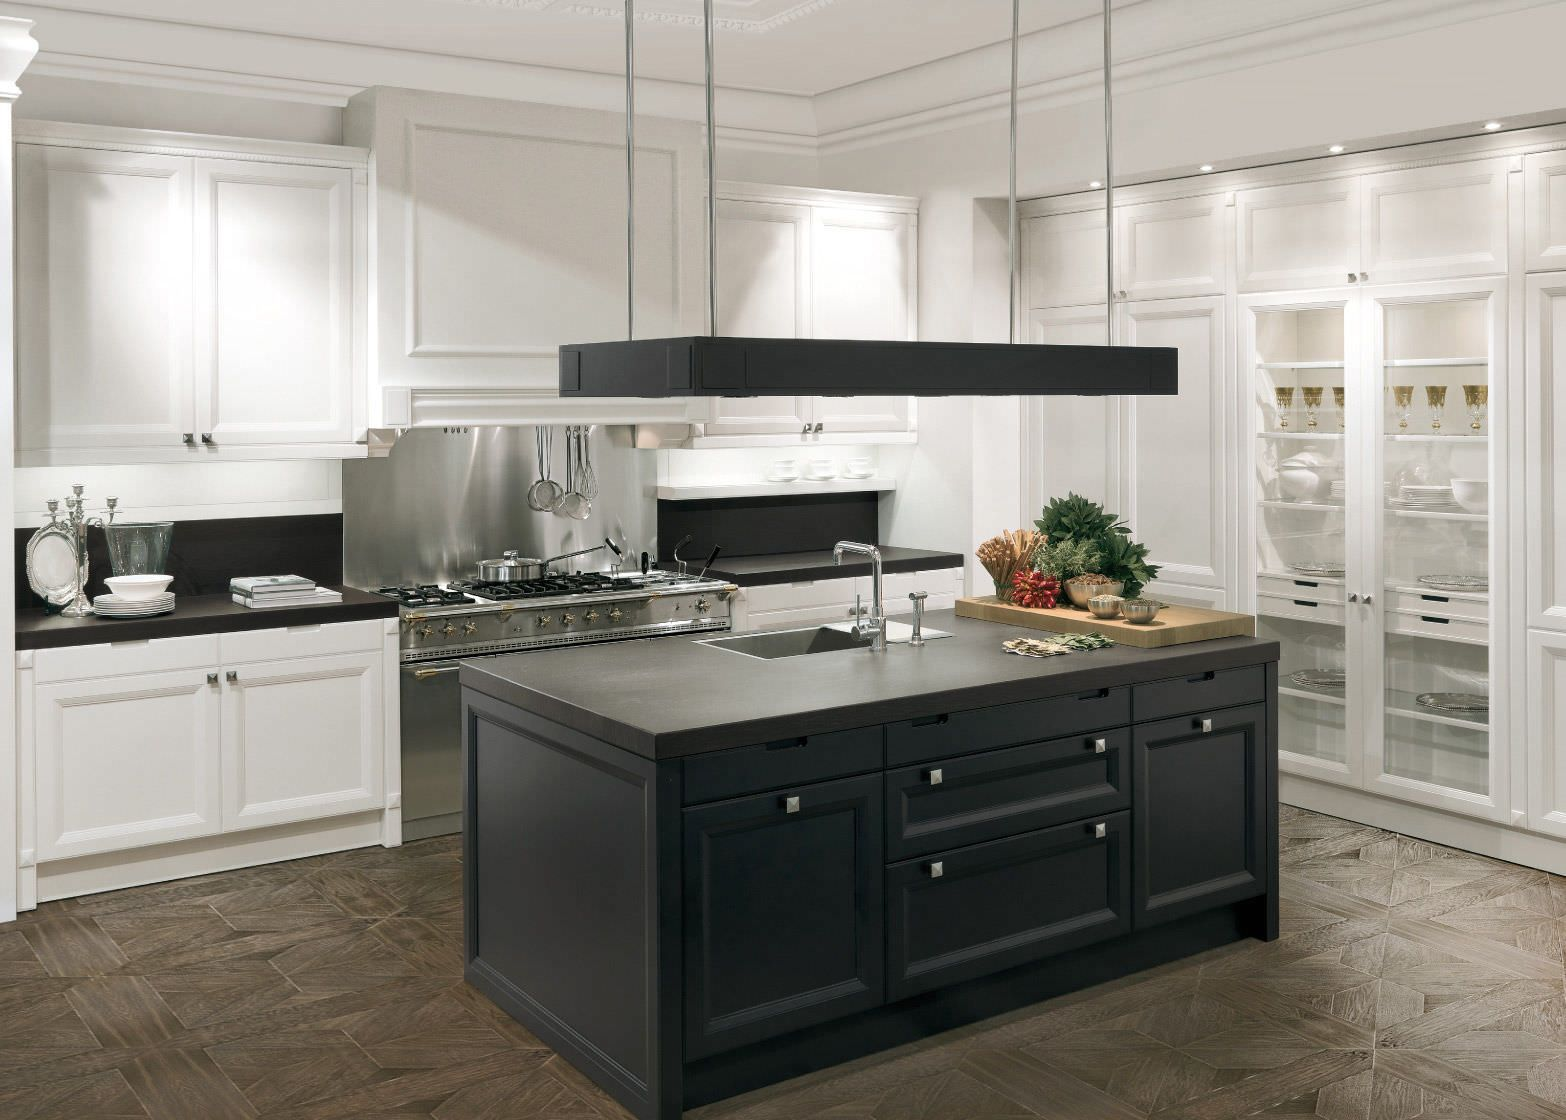 Elegant White Cabinets Black Island From White Kitchen Cabinets With Black Island